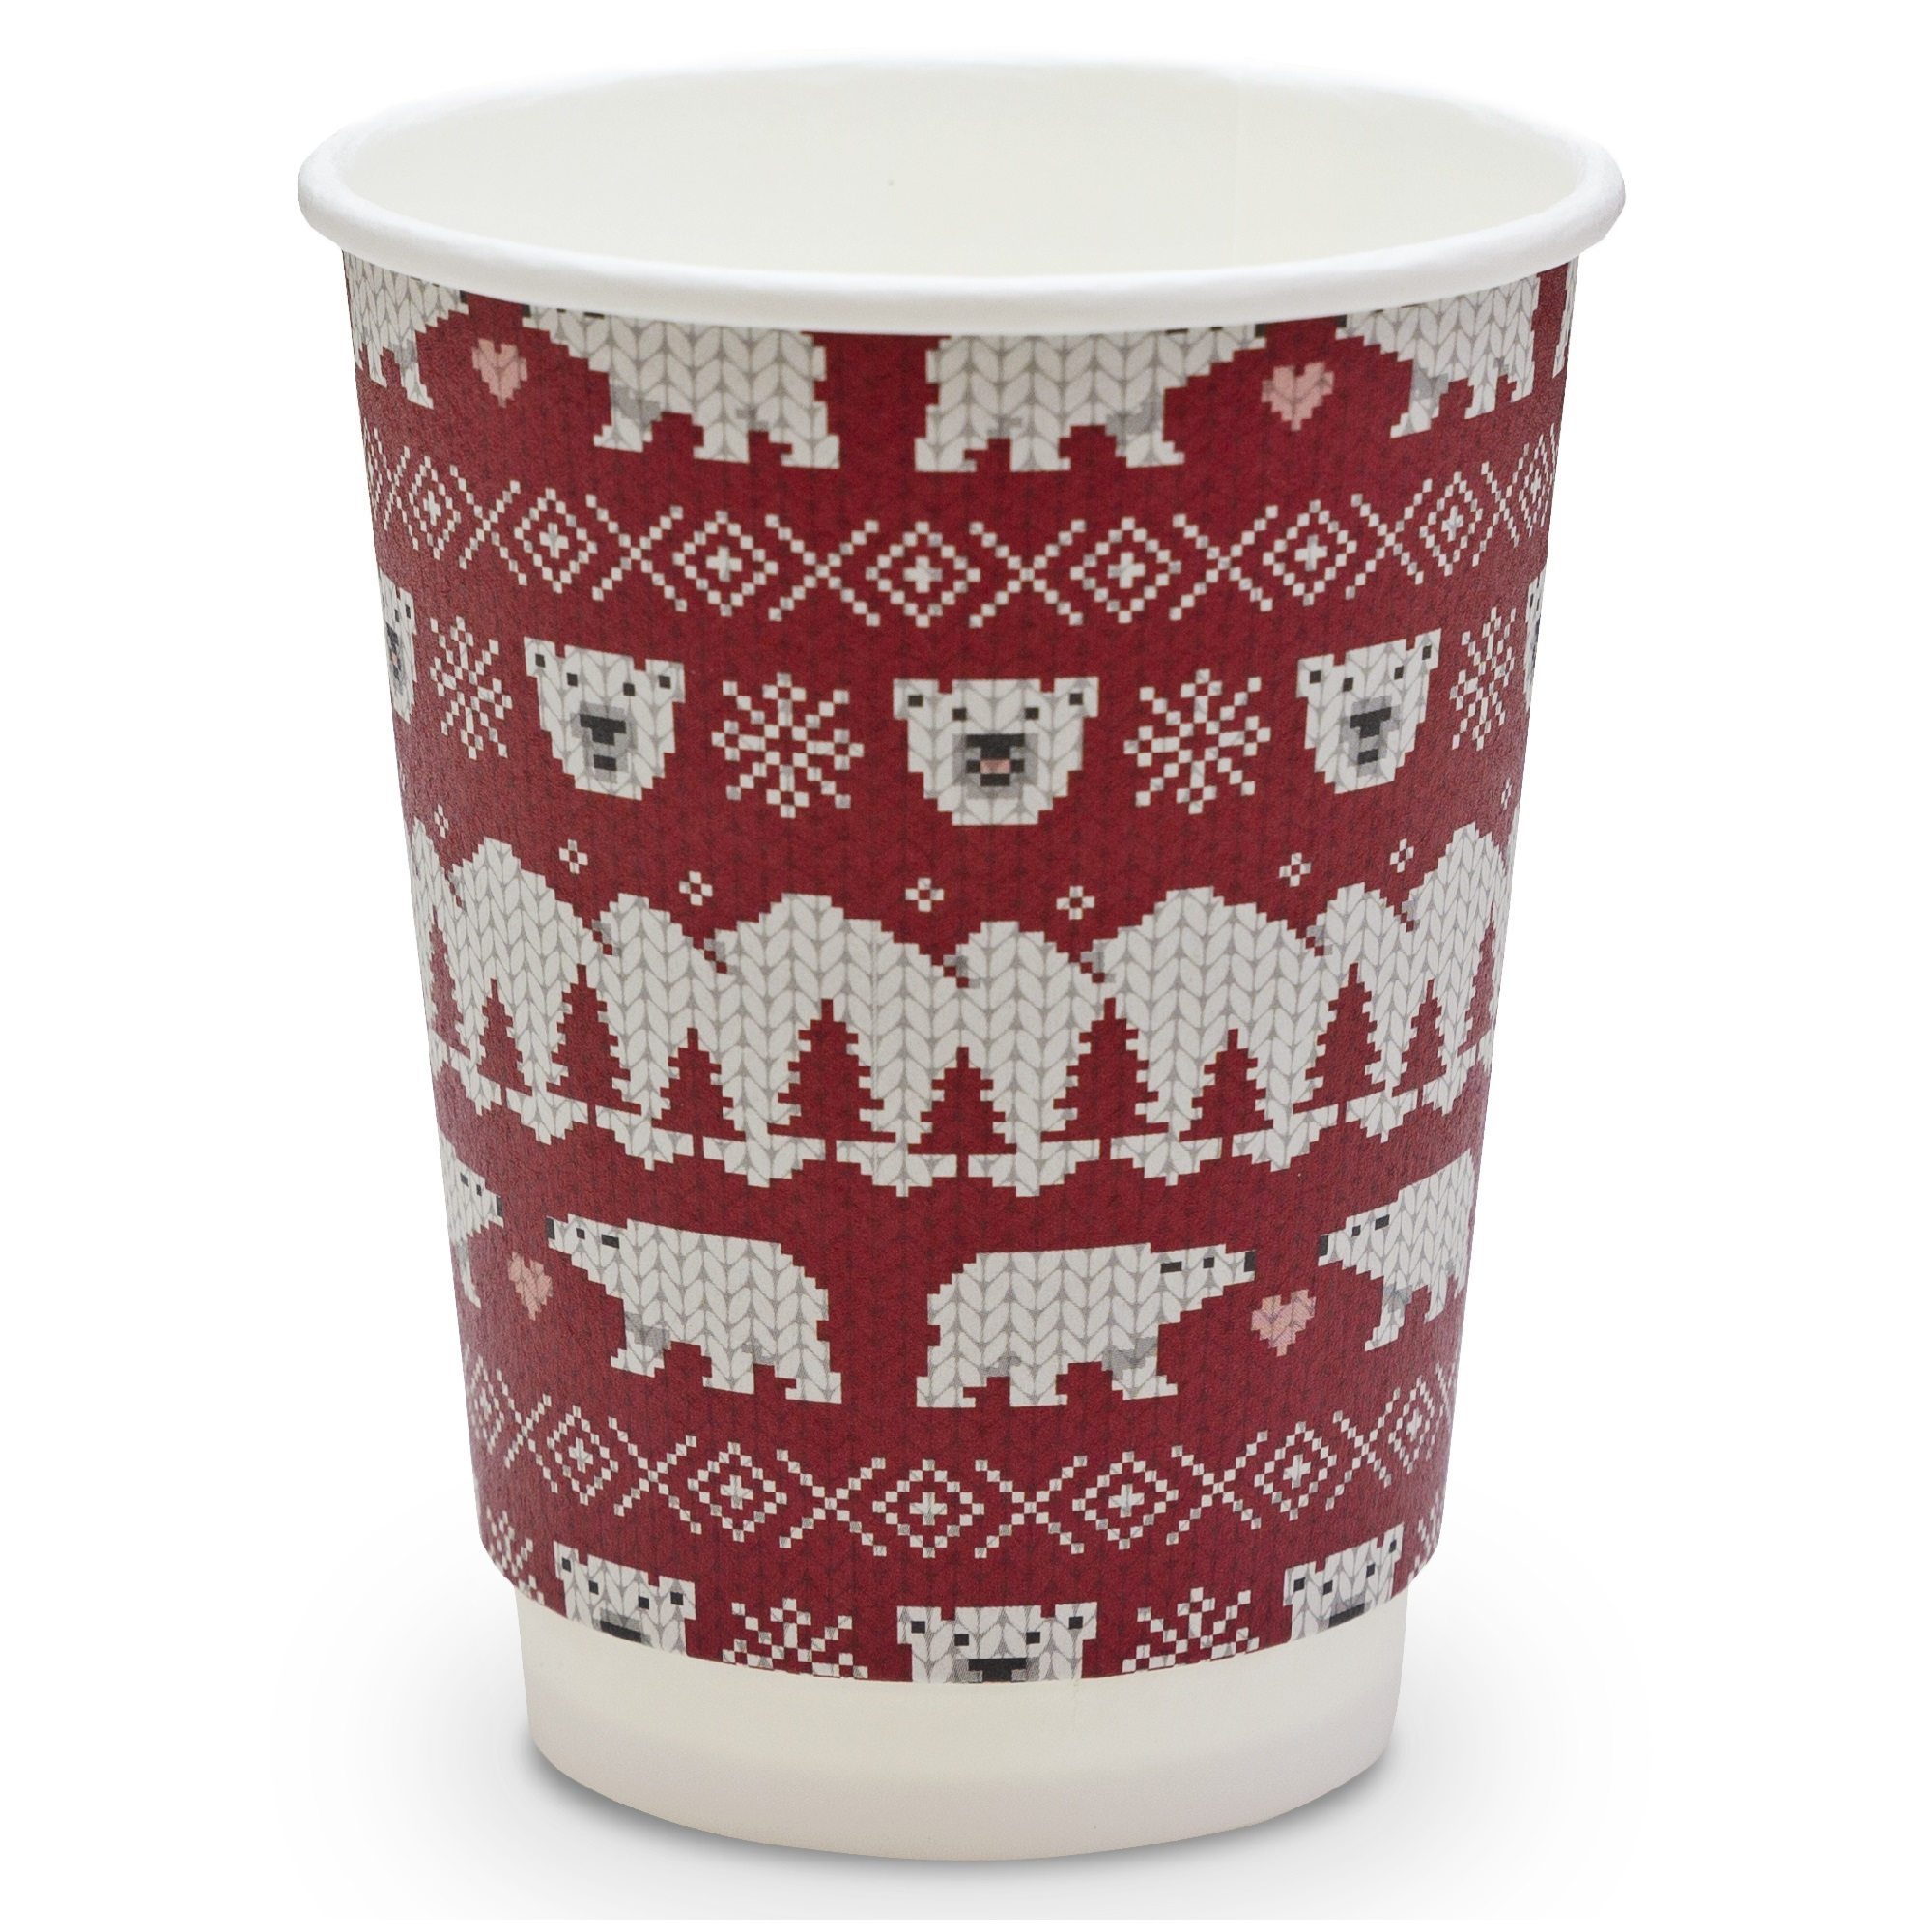 12oz Polar Bear Biodegradable Paper Cups & Lids | For Hot Drinks